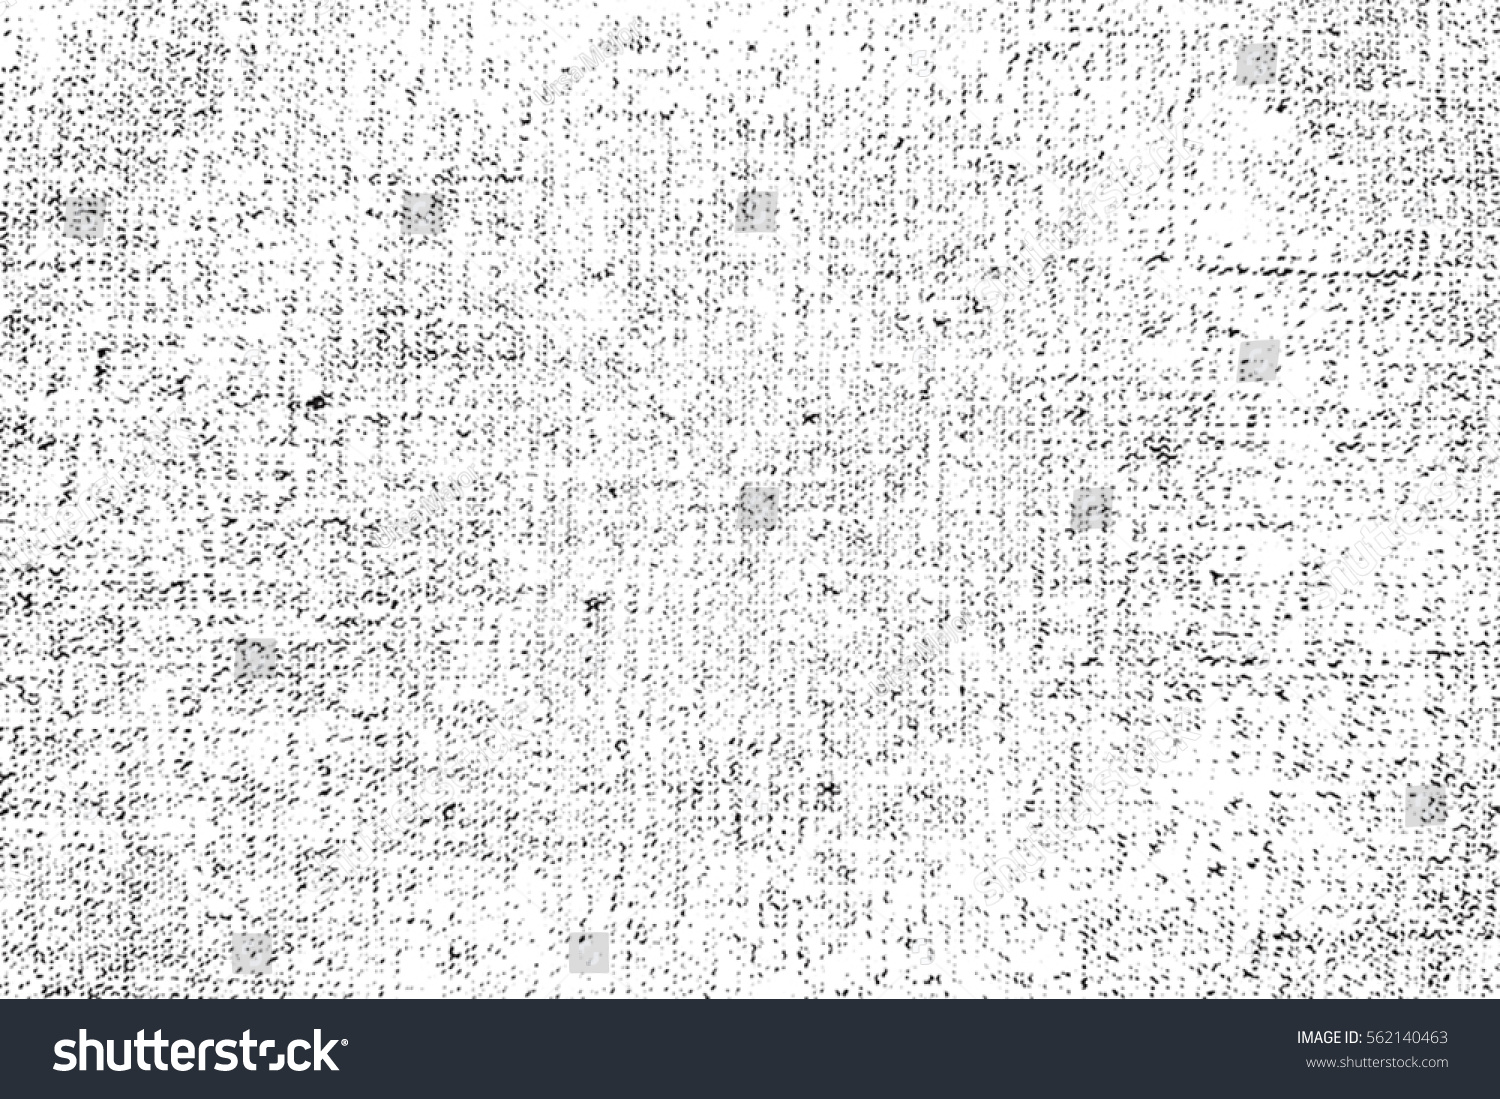 Distressed grainy thread overlay texture. Grunge cloth messy background. Dirty rough empty cover template. Rural rag wall backdrop. Weathered textile aging design element. EPS10 vector.